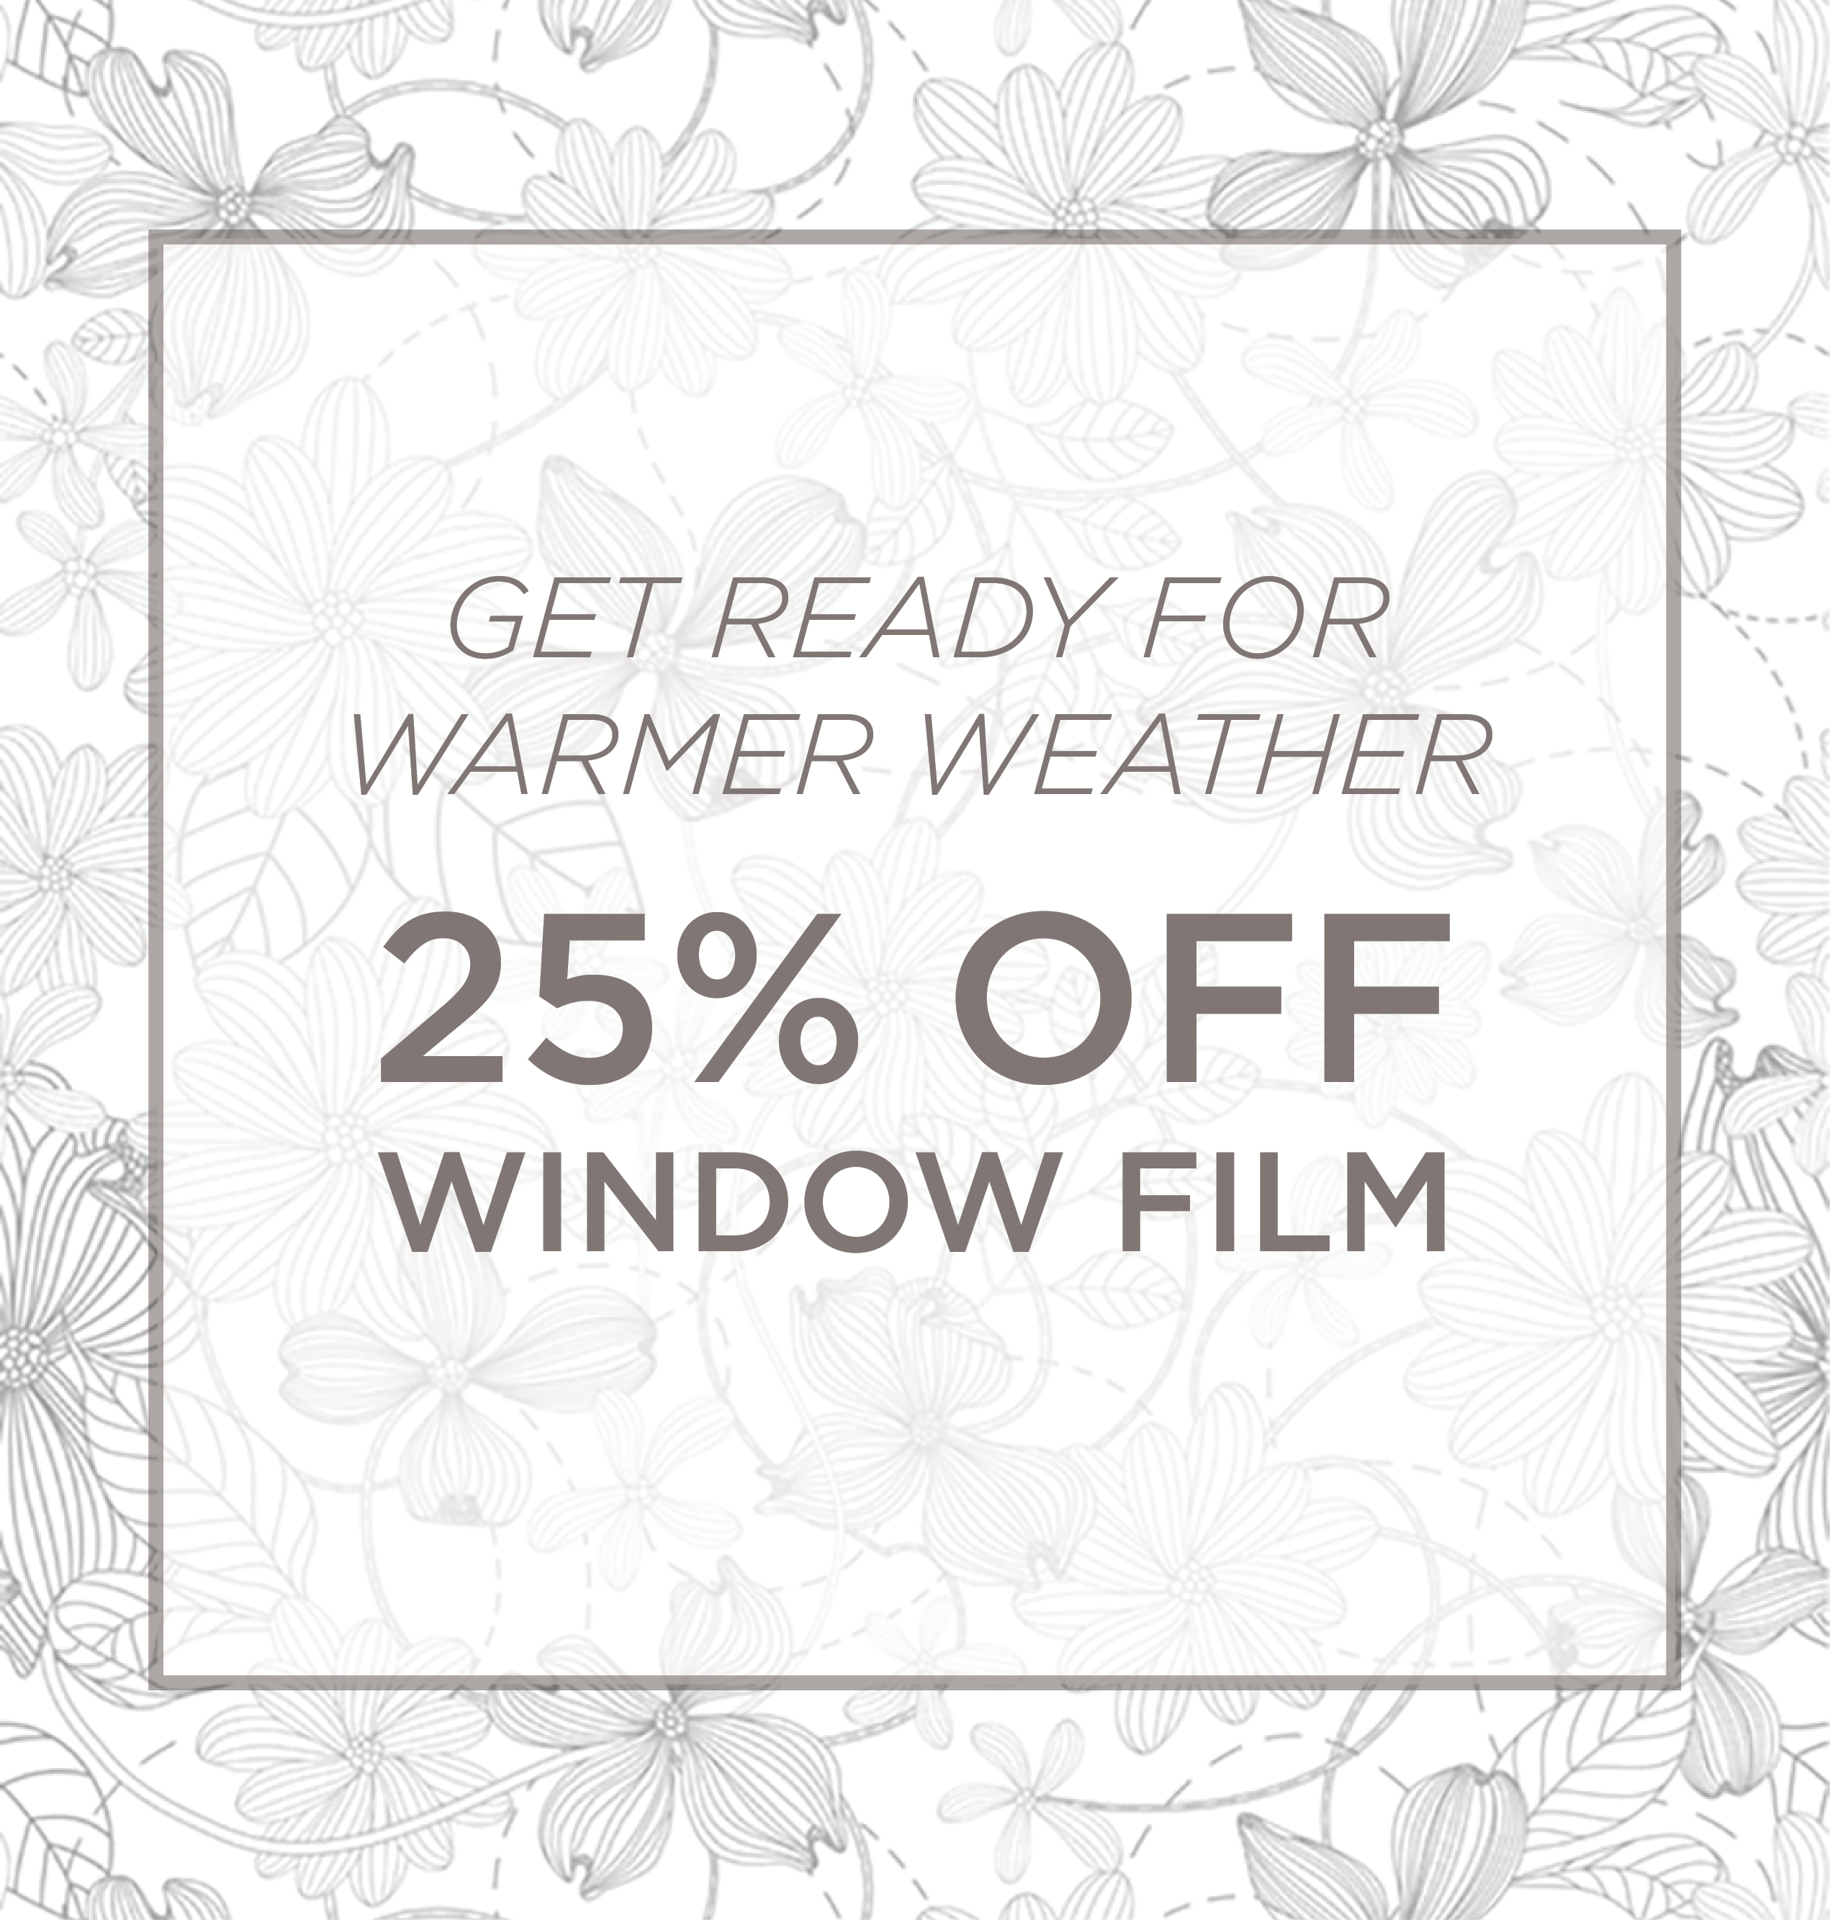 Window Film Sale 25% Off